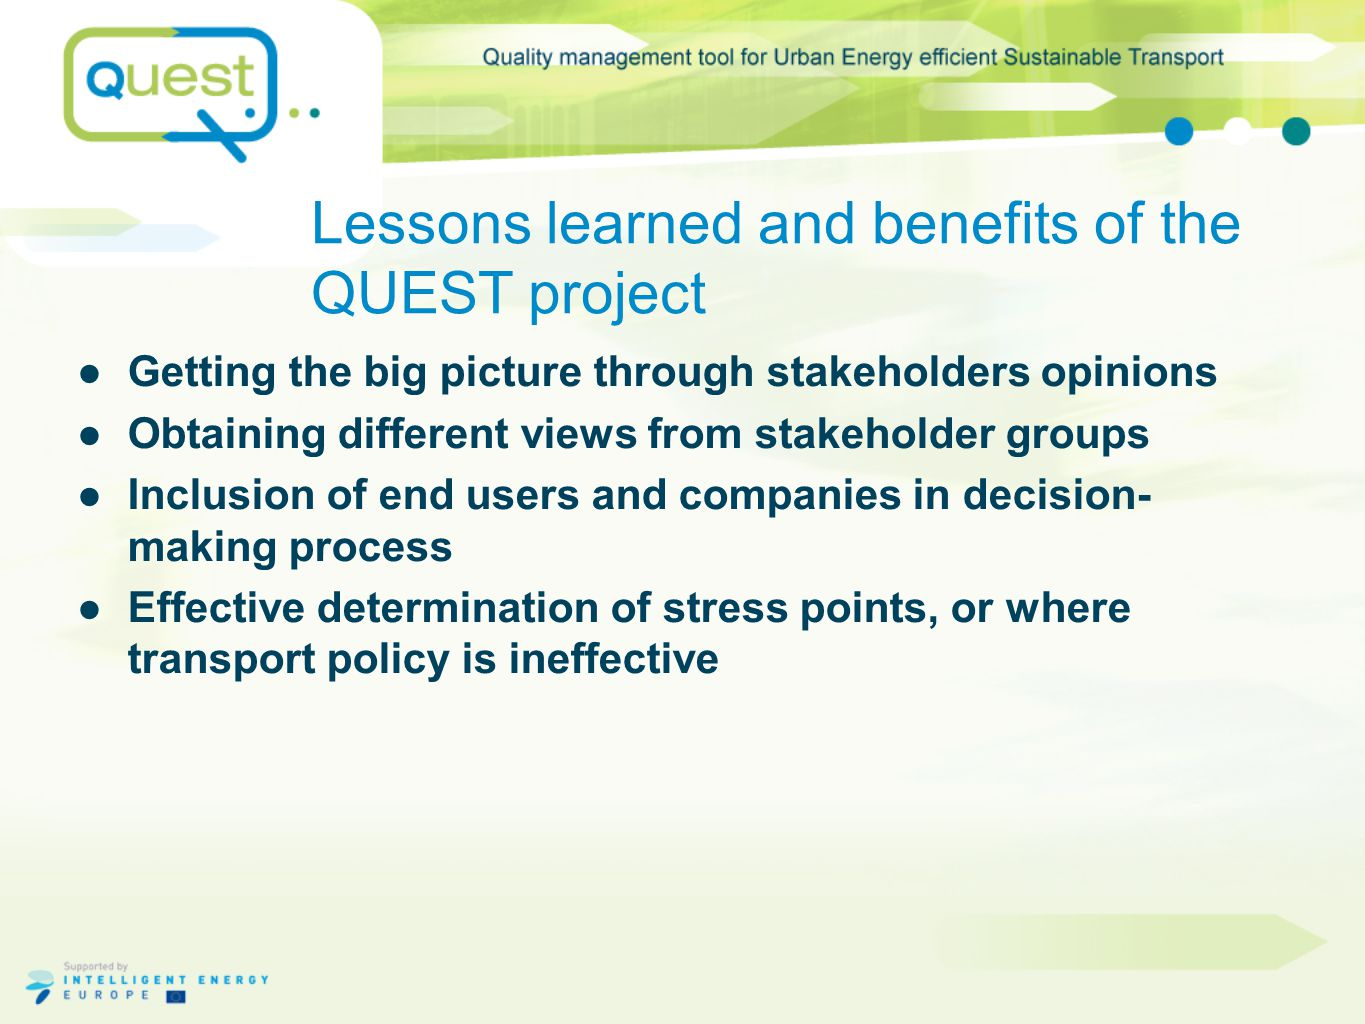 Lessons learned and benefits of the QUEST project ●Getting the big picture through stakeholders opinions ●Obtaining different views from stakeholder groups ●Inclusion of end users and companies in decision- making process ●Effective determination of stress points, or where transport policy is ineffective